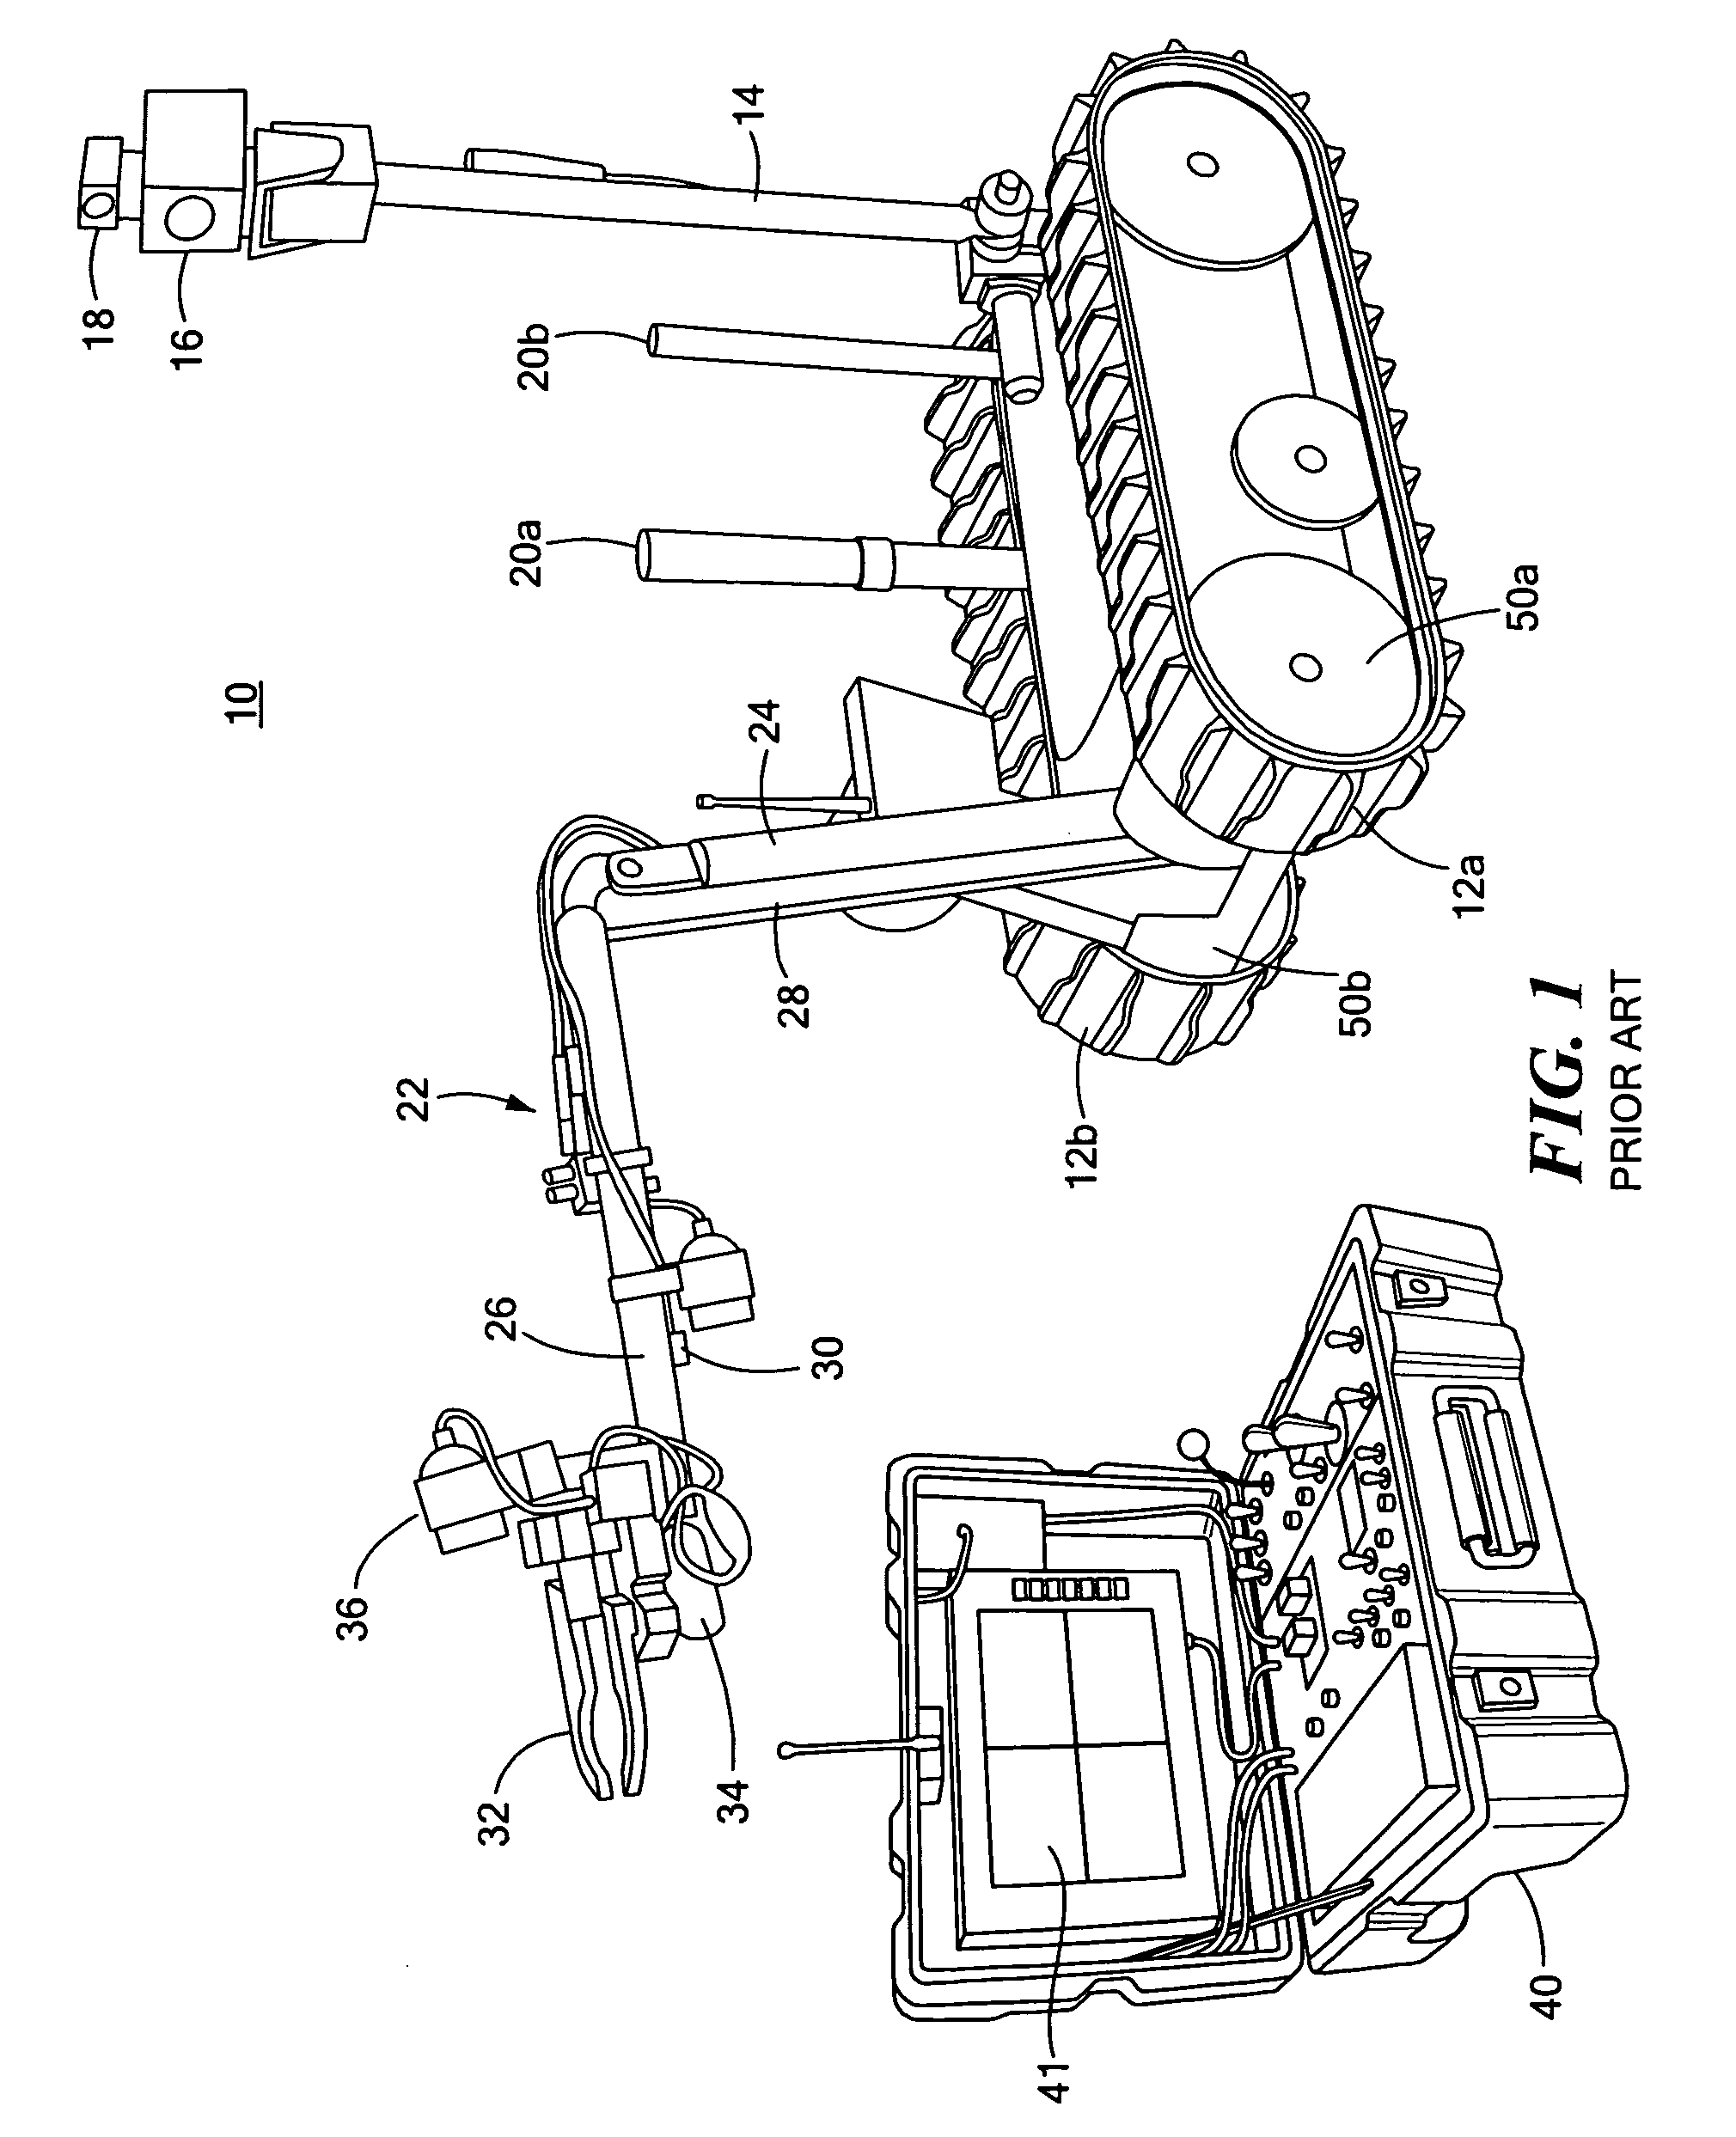 patent us8322249 - robot arm assembly